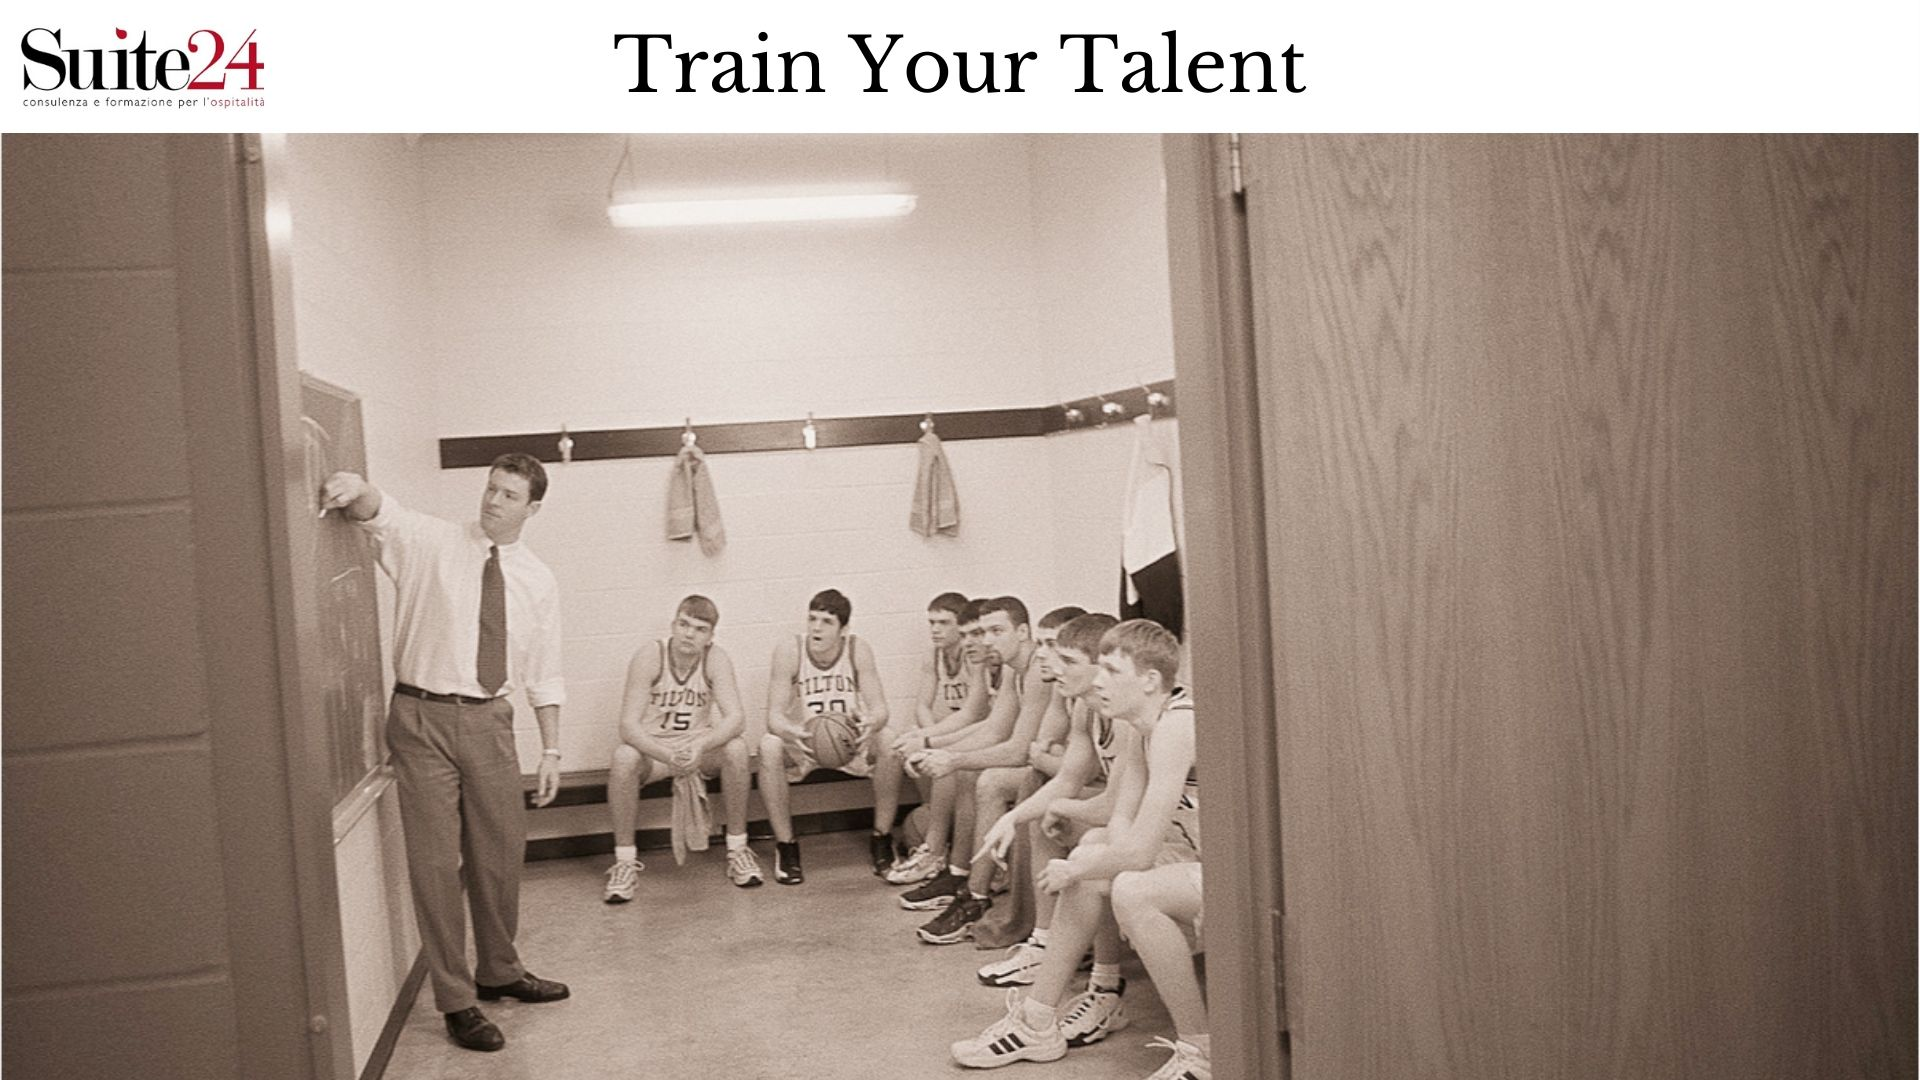 Train Your Talent